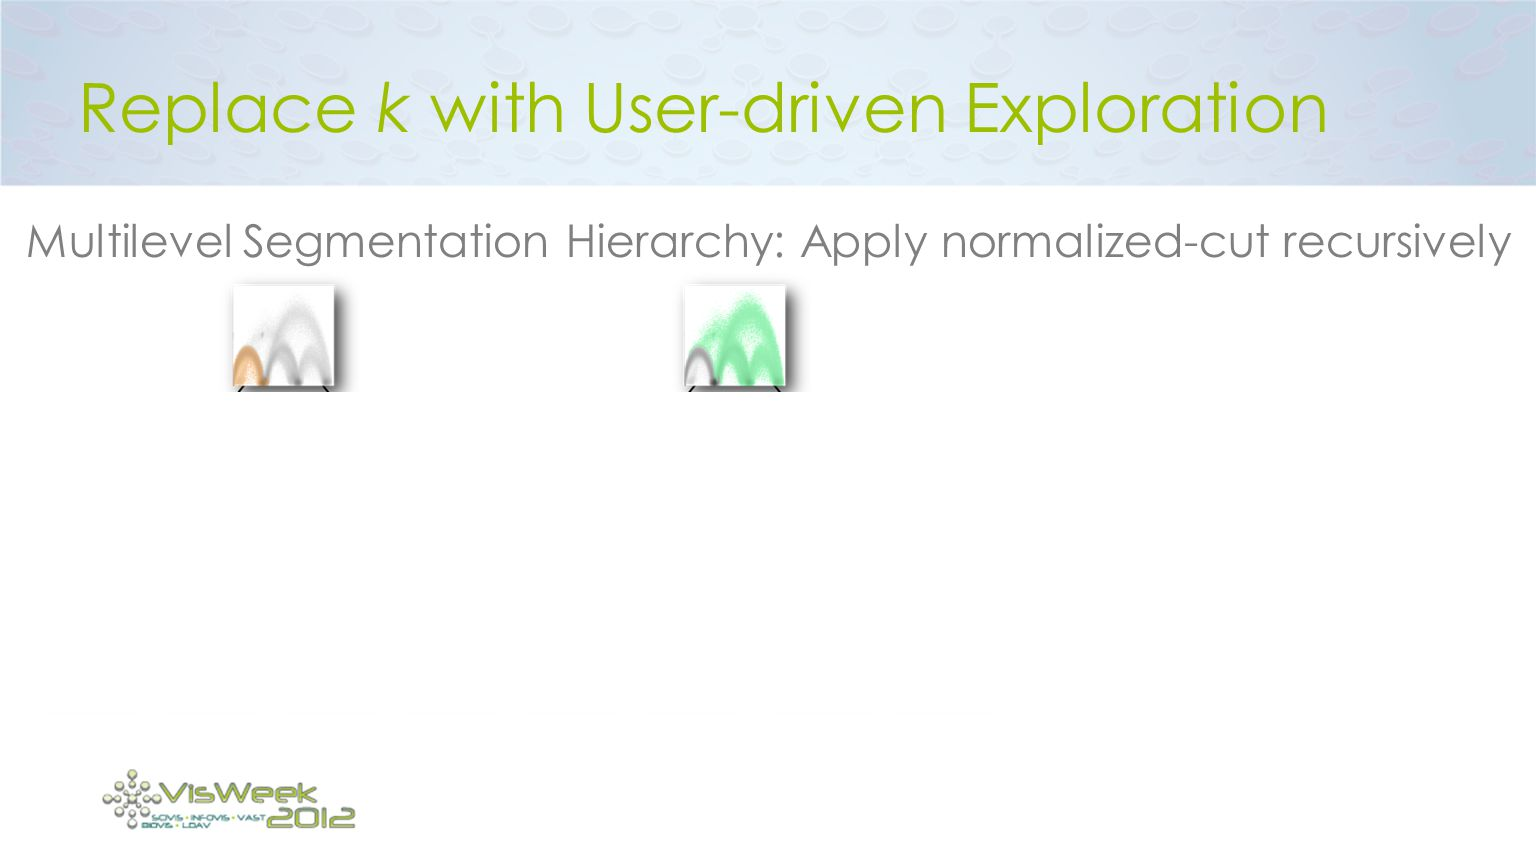 Replace k with User-driven Exploration